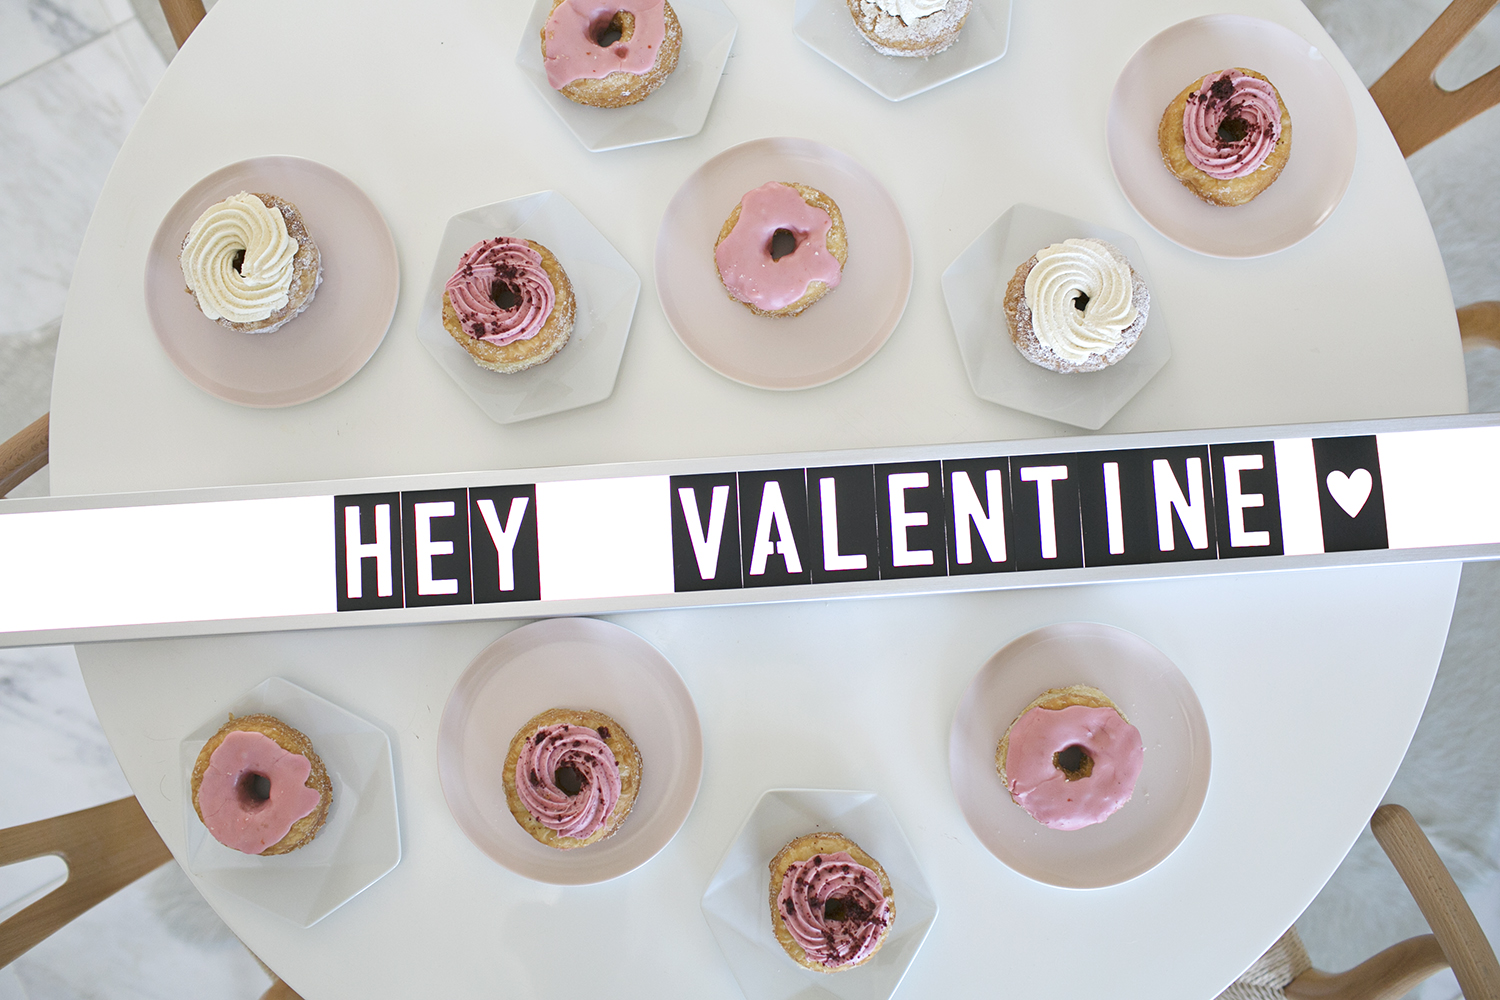 10 Ways To Celebrate Valentine's Day At Home